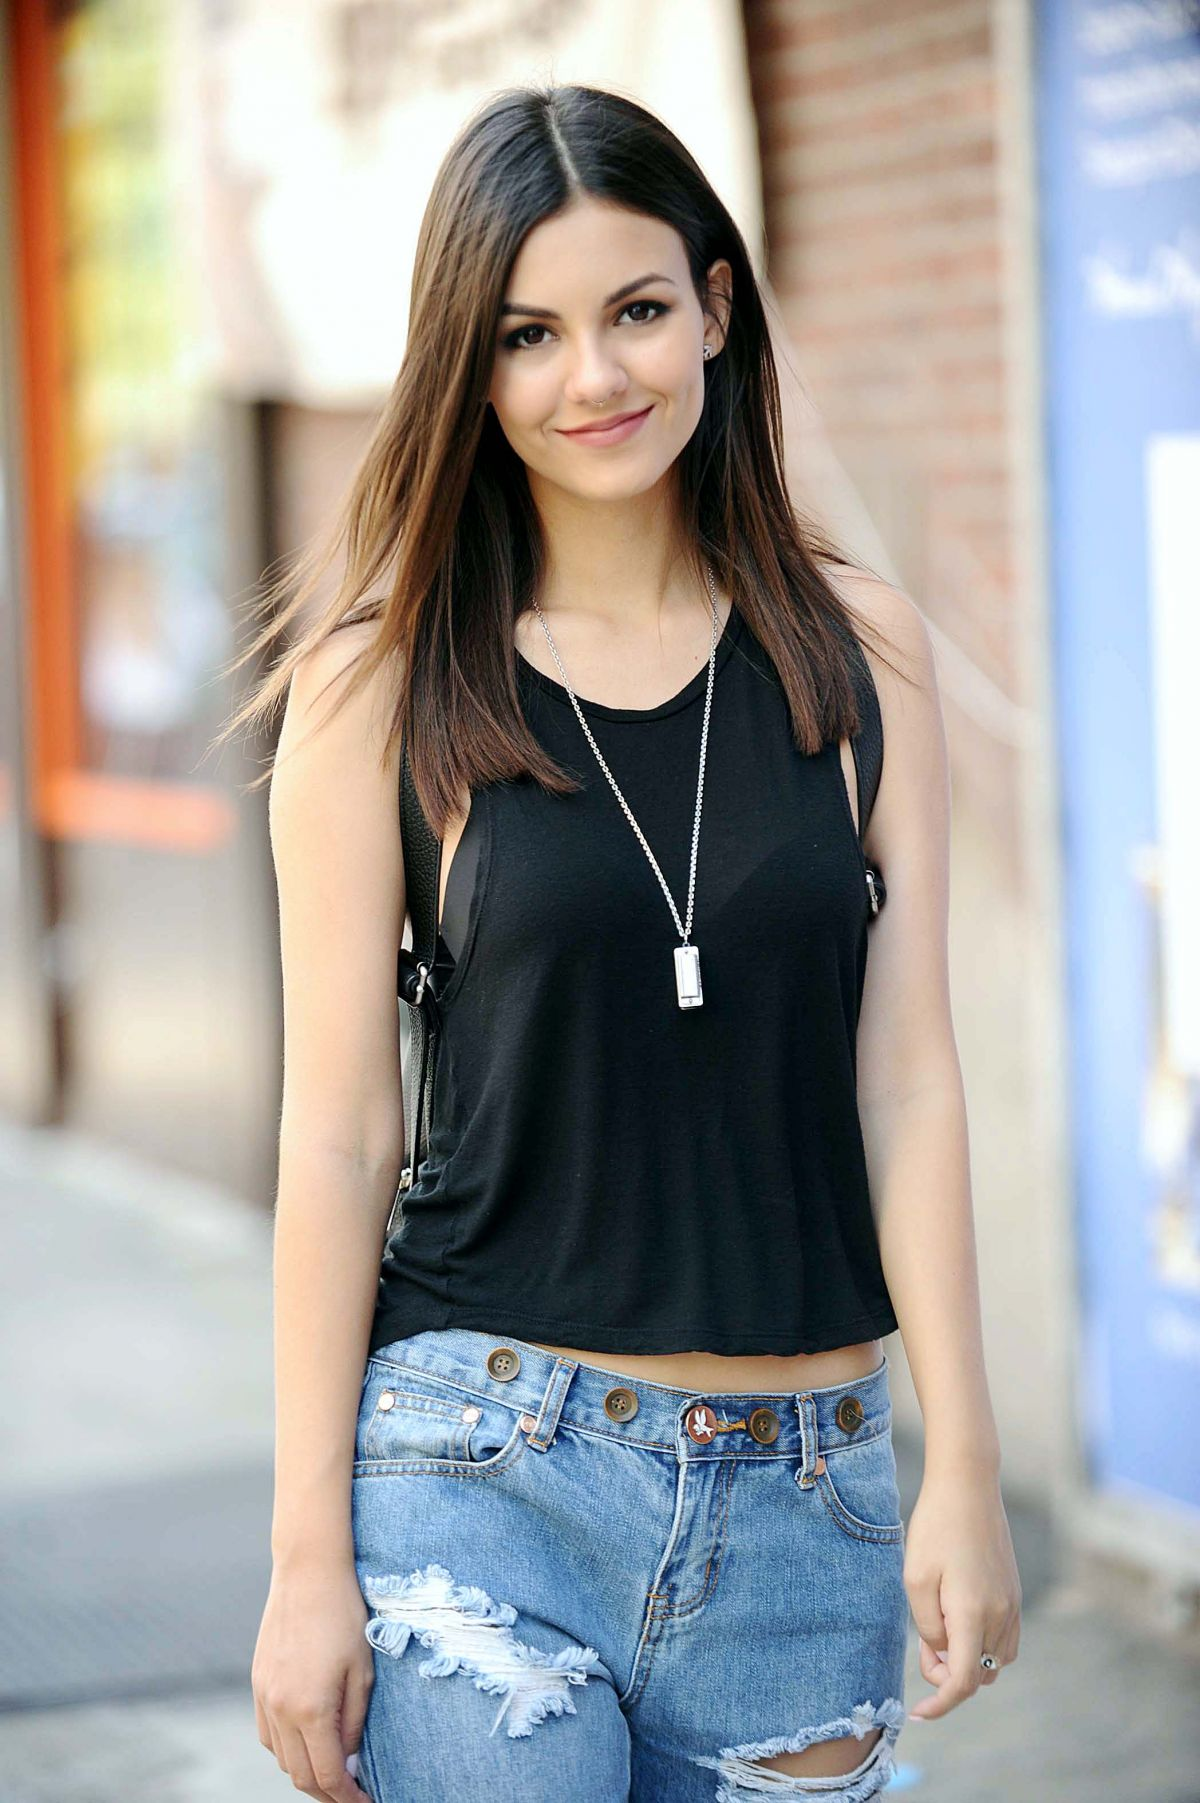 VICTORIA JUSTICE In Ripped Jeans Out And About In New York